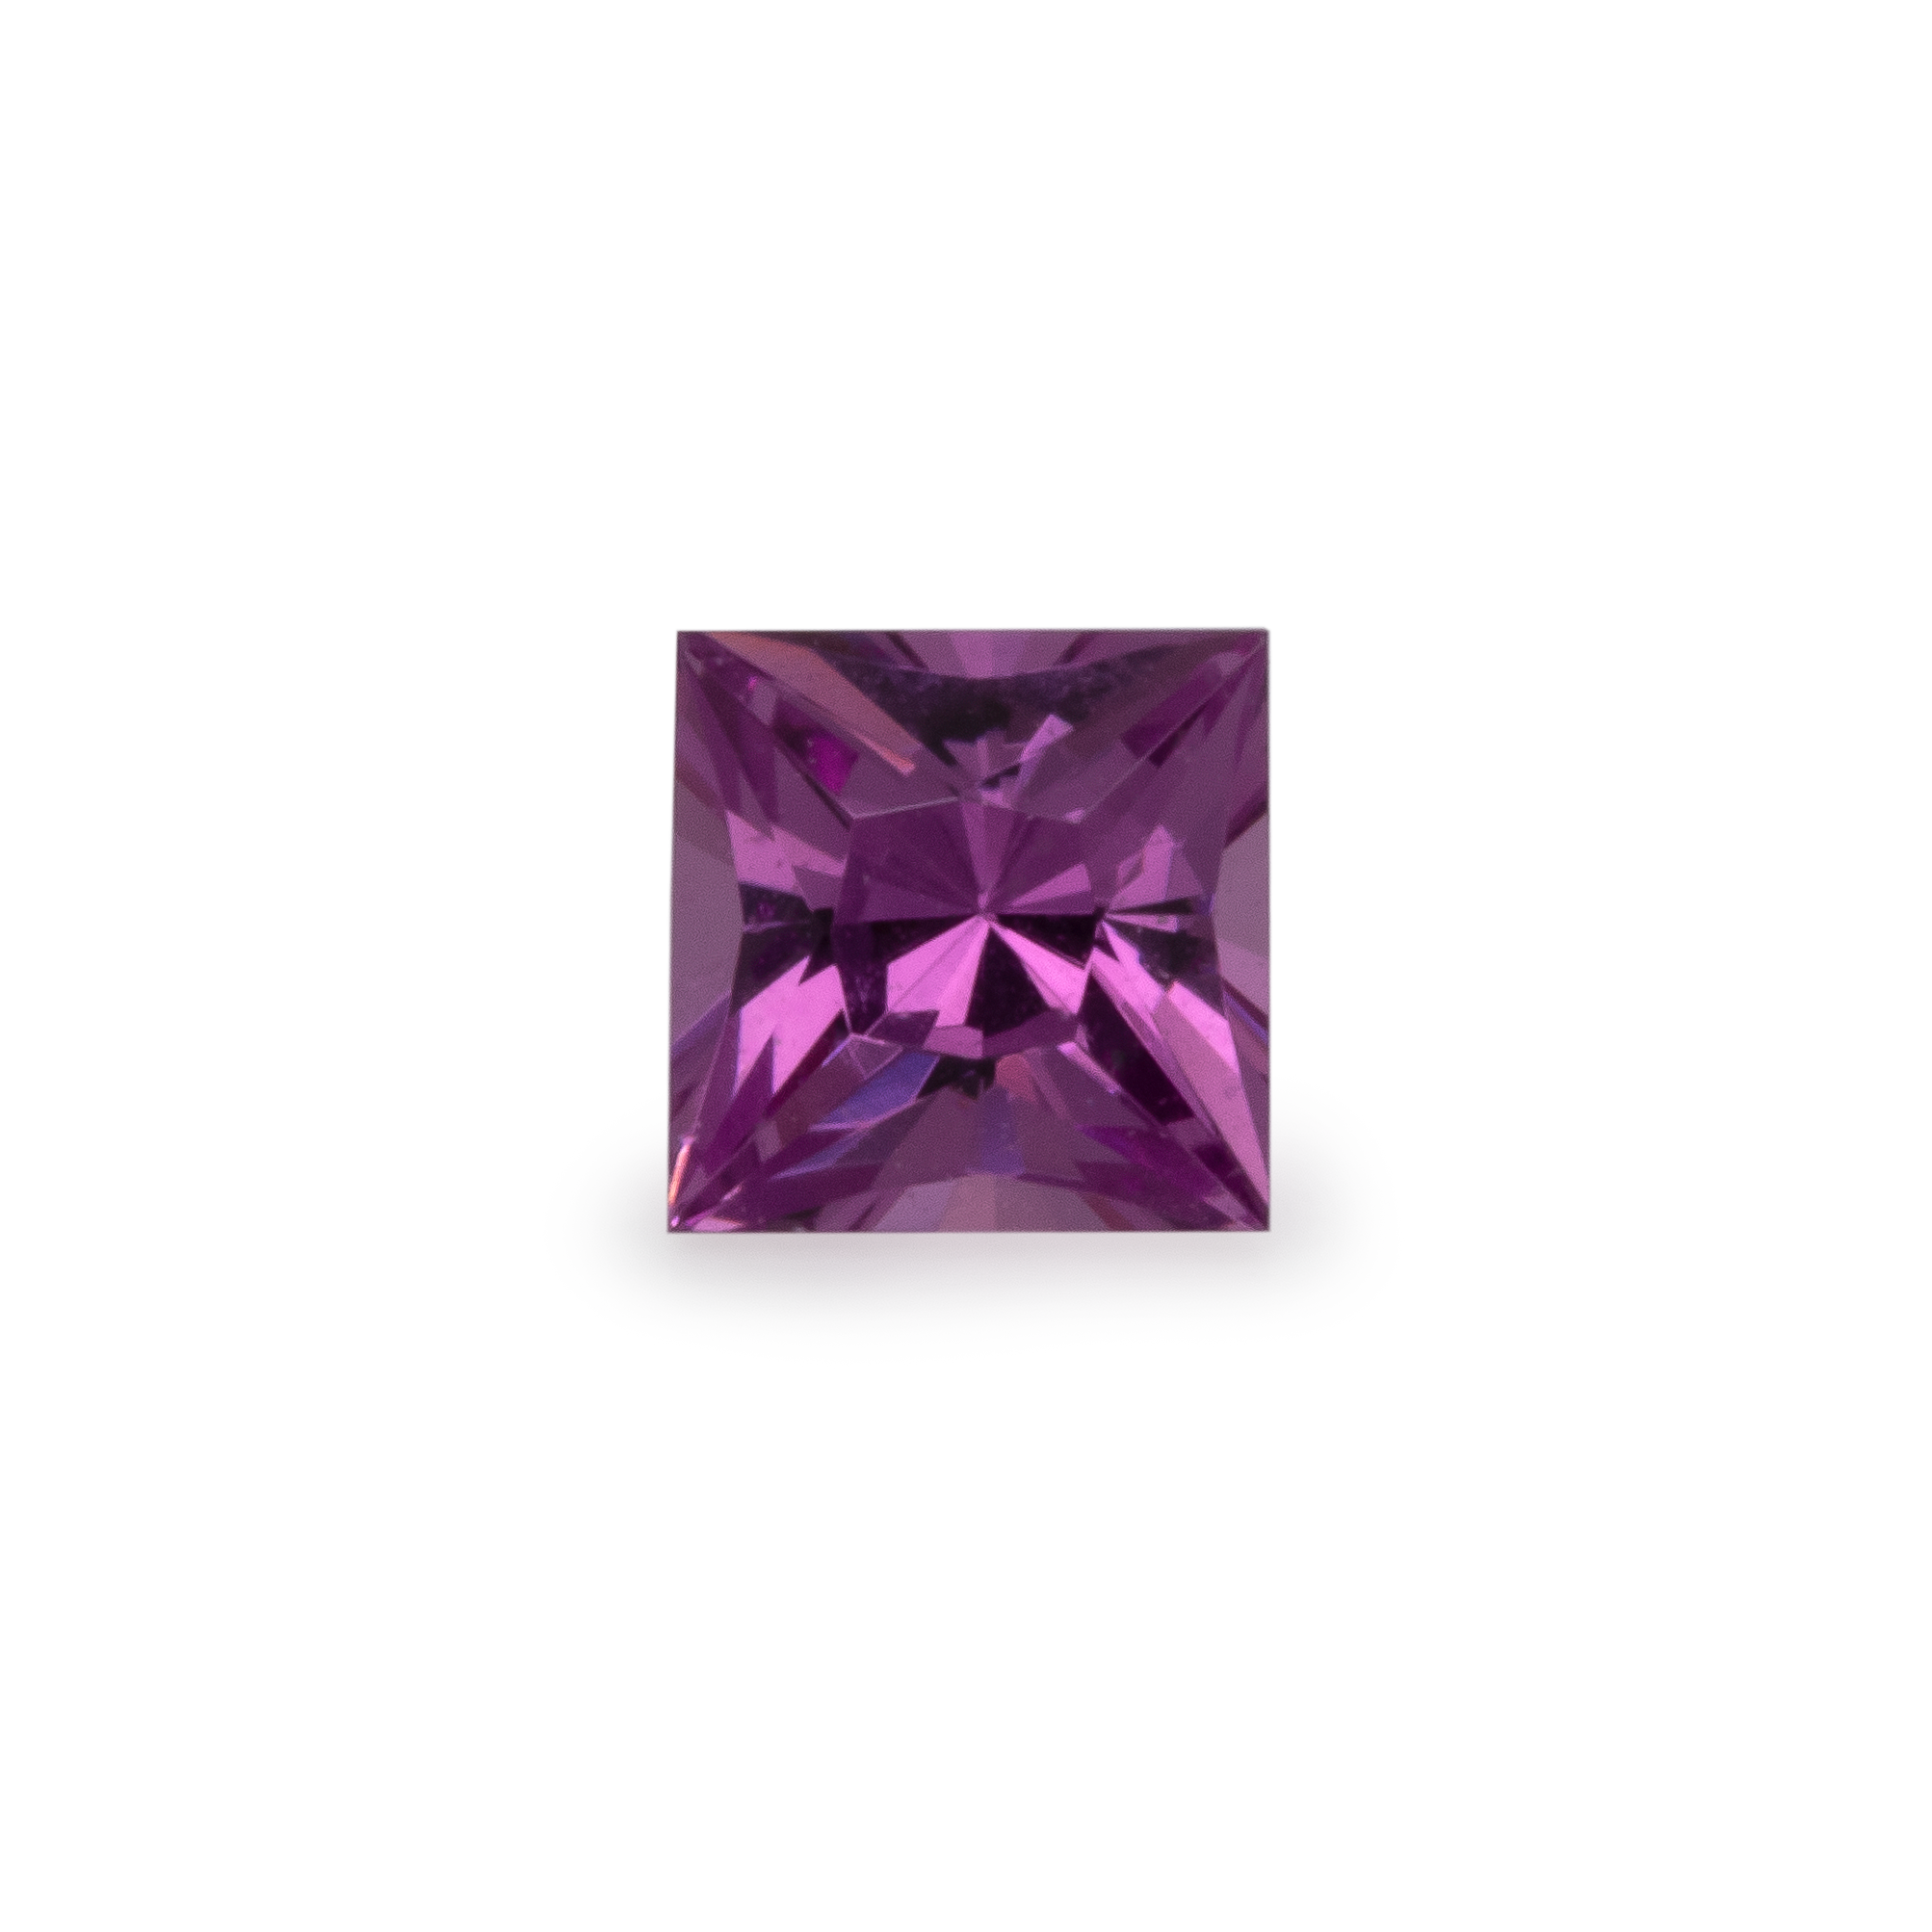 Royal Purple Garnet - lila, rechteck, 2,5x2,5 mm,  0,07-0,11 cts, Nr. RP26001